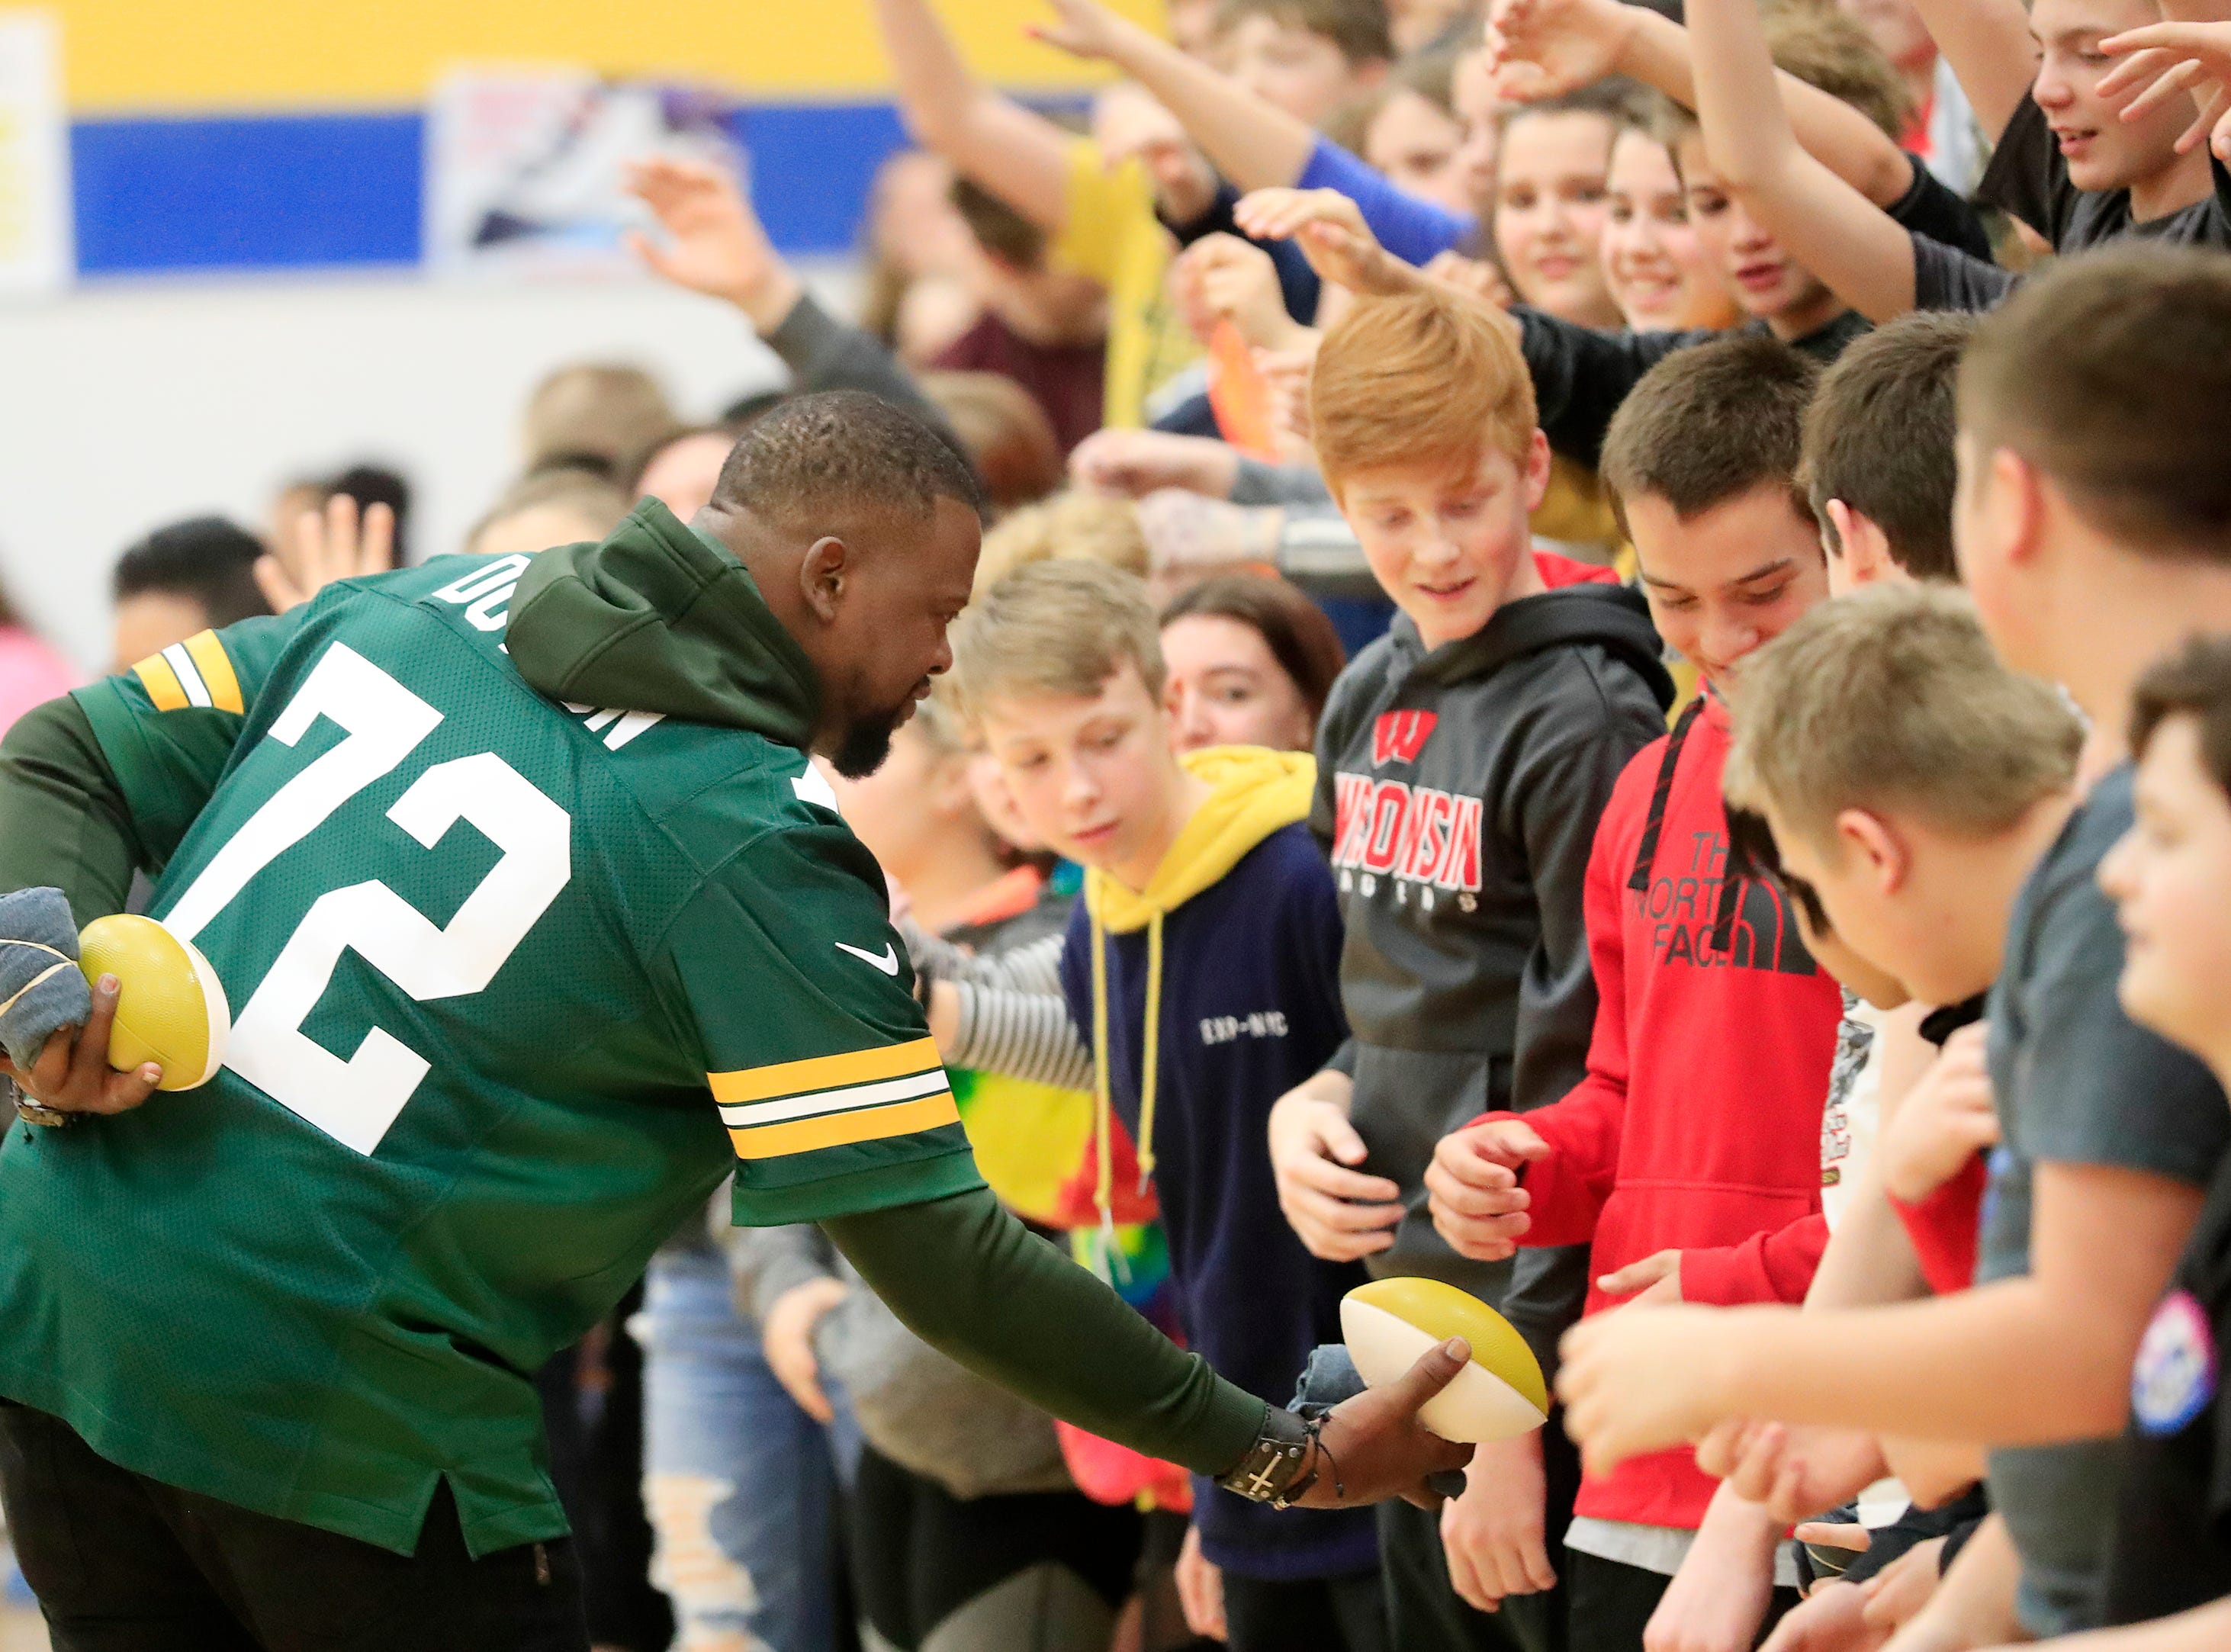 Former Green Bay Packers player Earl Dotson hands out mini footballs during a stop on the Packers Tailgate Tour at Ben Franklin Junior High School on Tuesday, April 9, 2019 in Stevens Point, Wis.